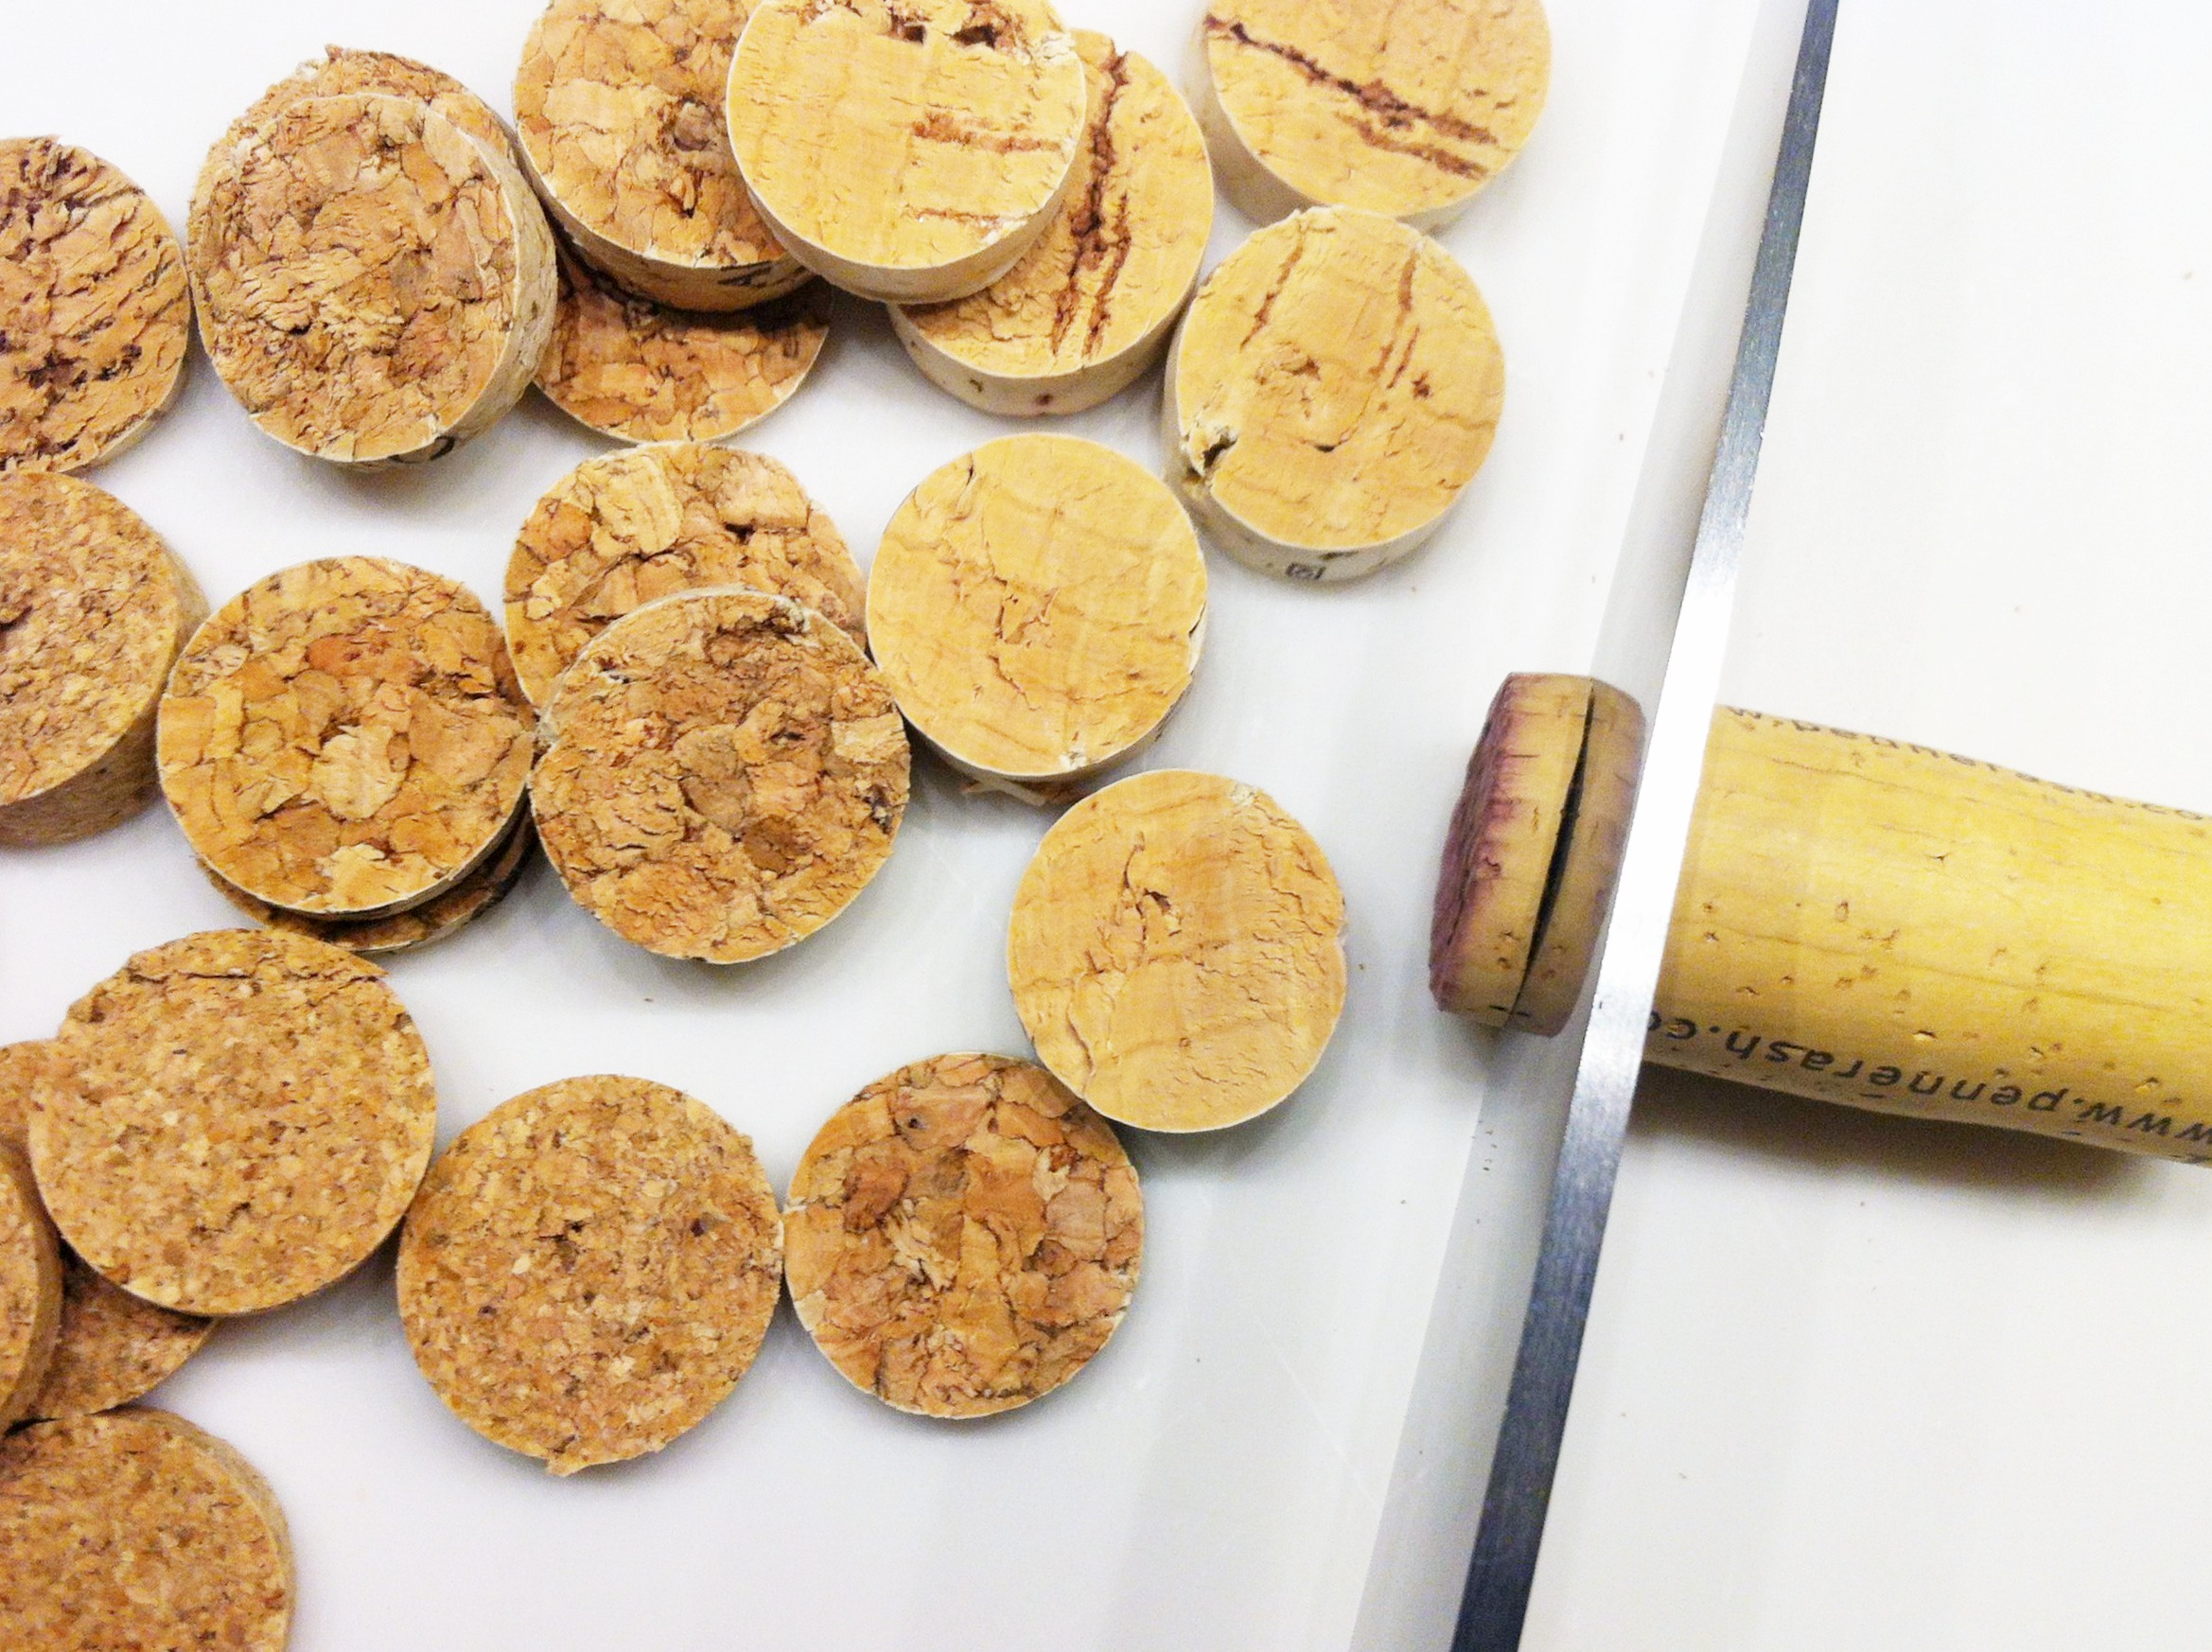 Crafts to do with wine corks - How To Slice Corks For Crafts